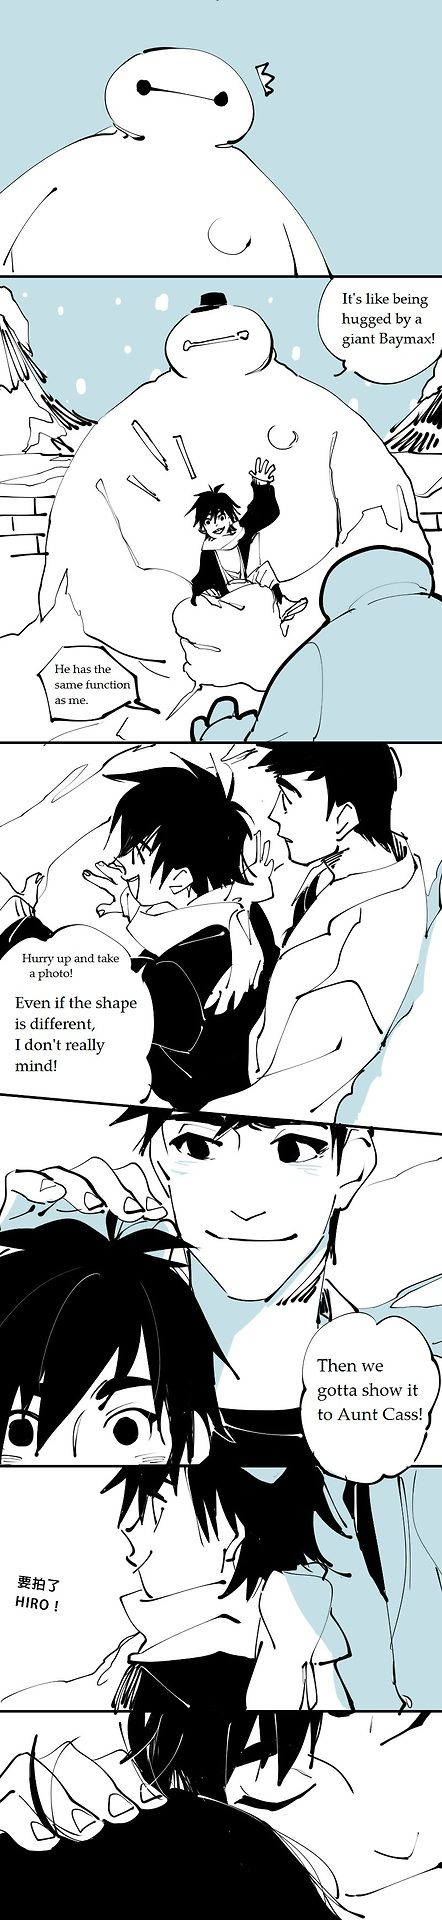 Big Hero 6 and Rise of the Guardians crossover - pg09